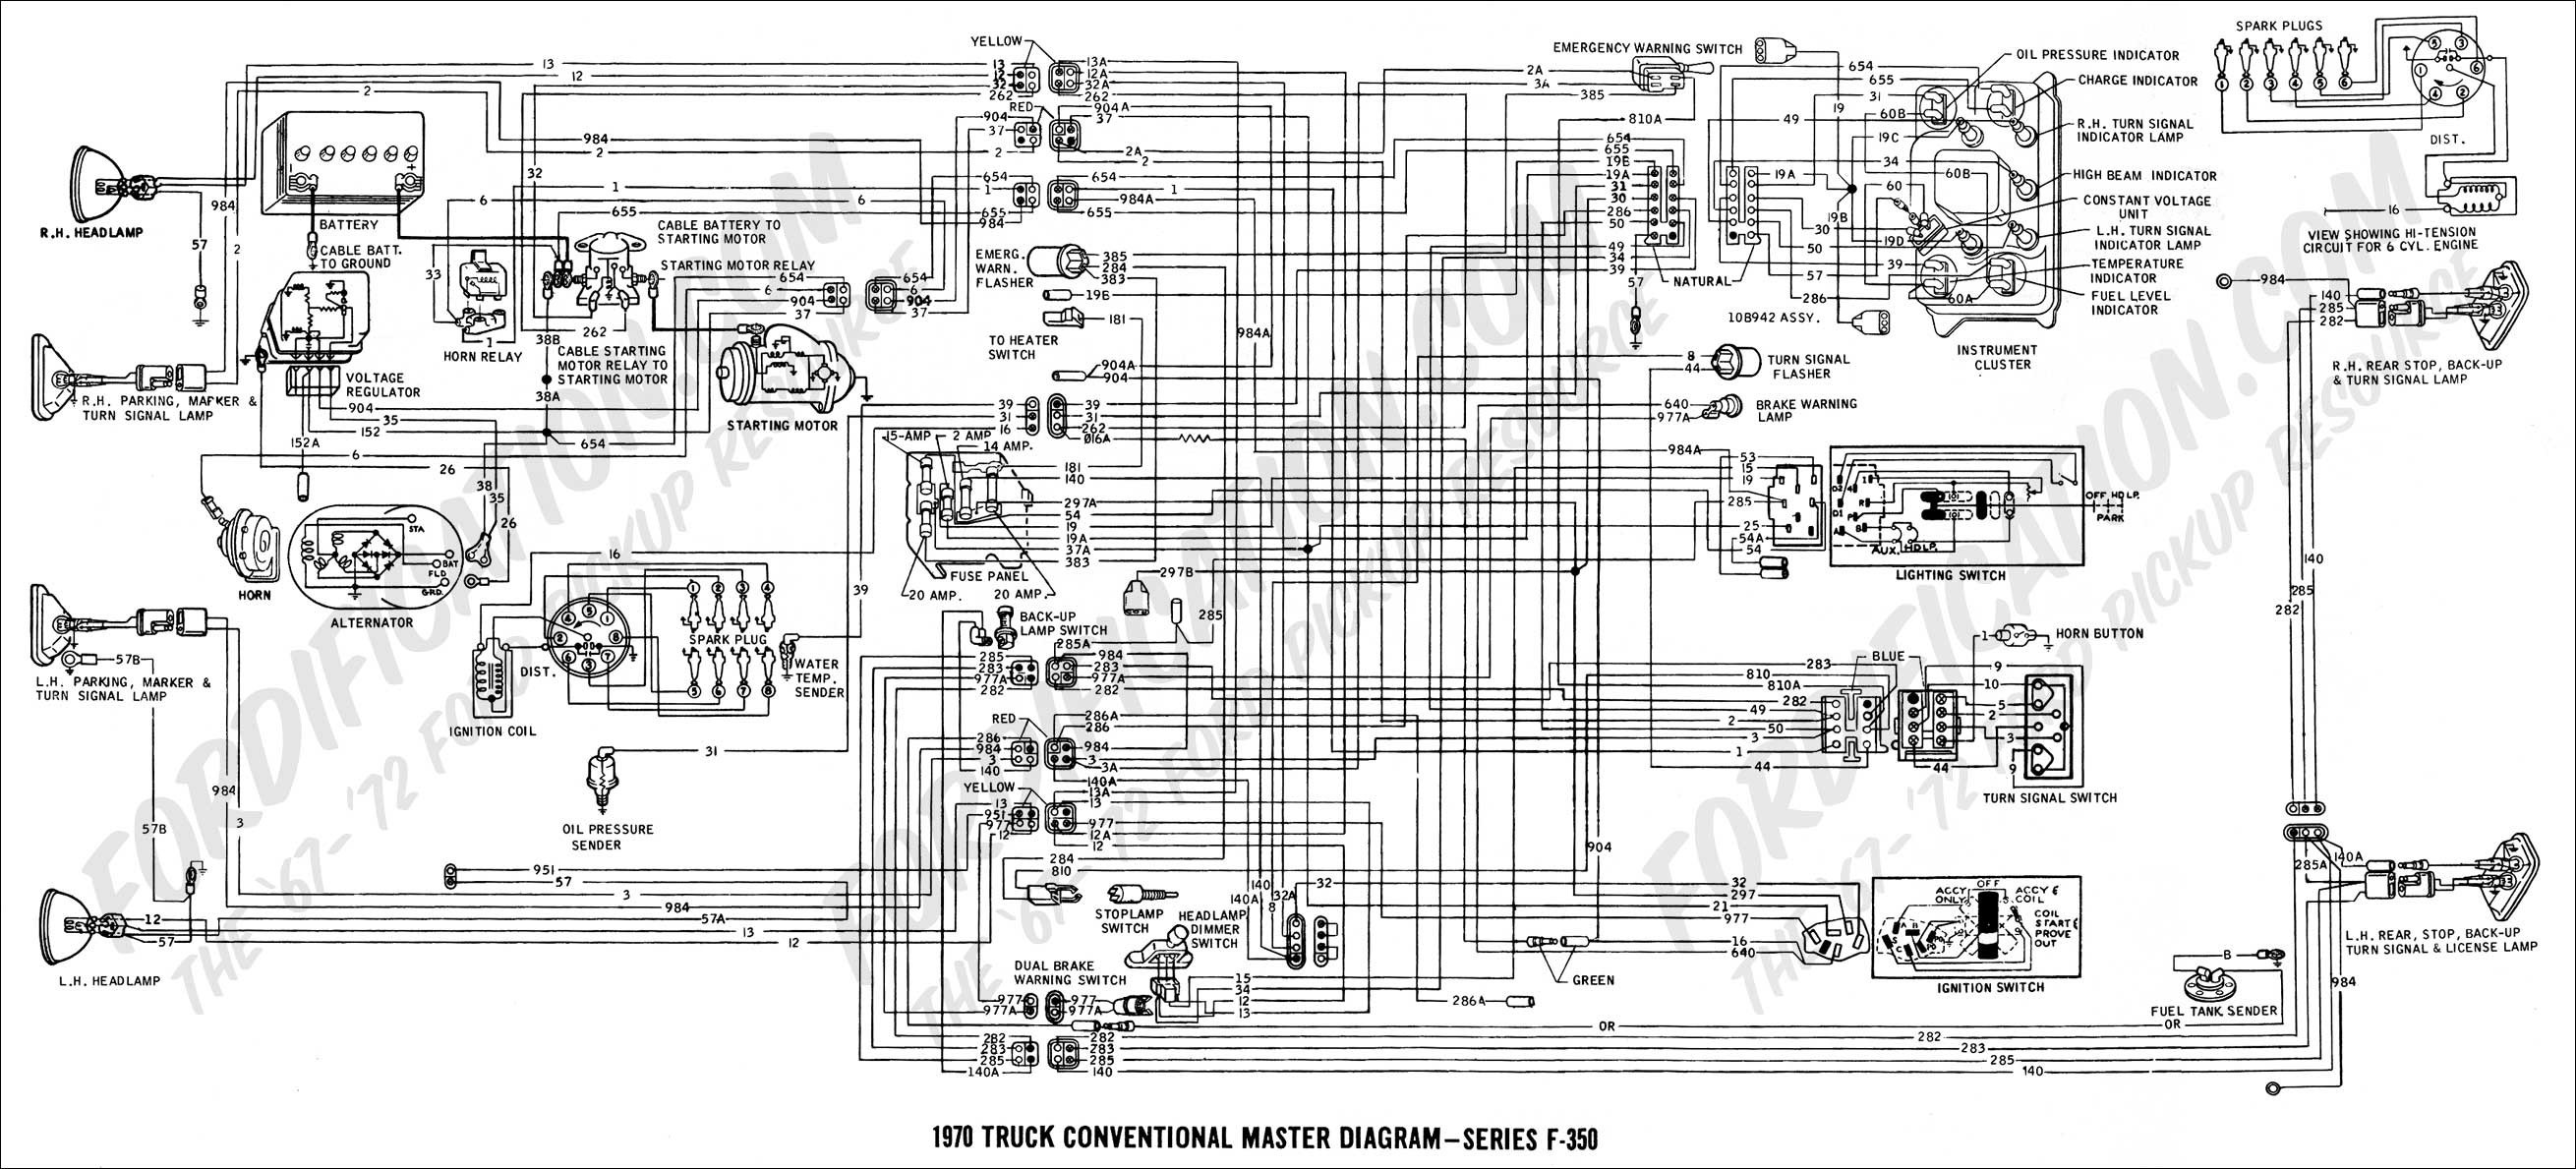 Ford Ignition Wiring Diagram Basic Ignition Wiring Diagram Diagram as Well ford F 350 Wiring